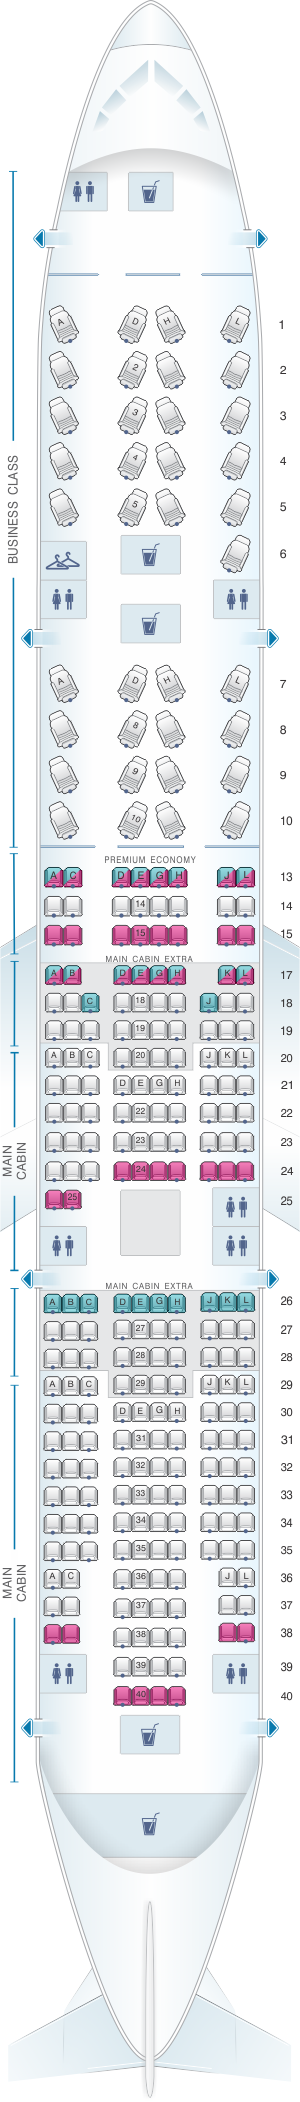 Seat map for American Airlines Boeing B777 200ER 273pax